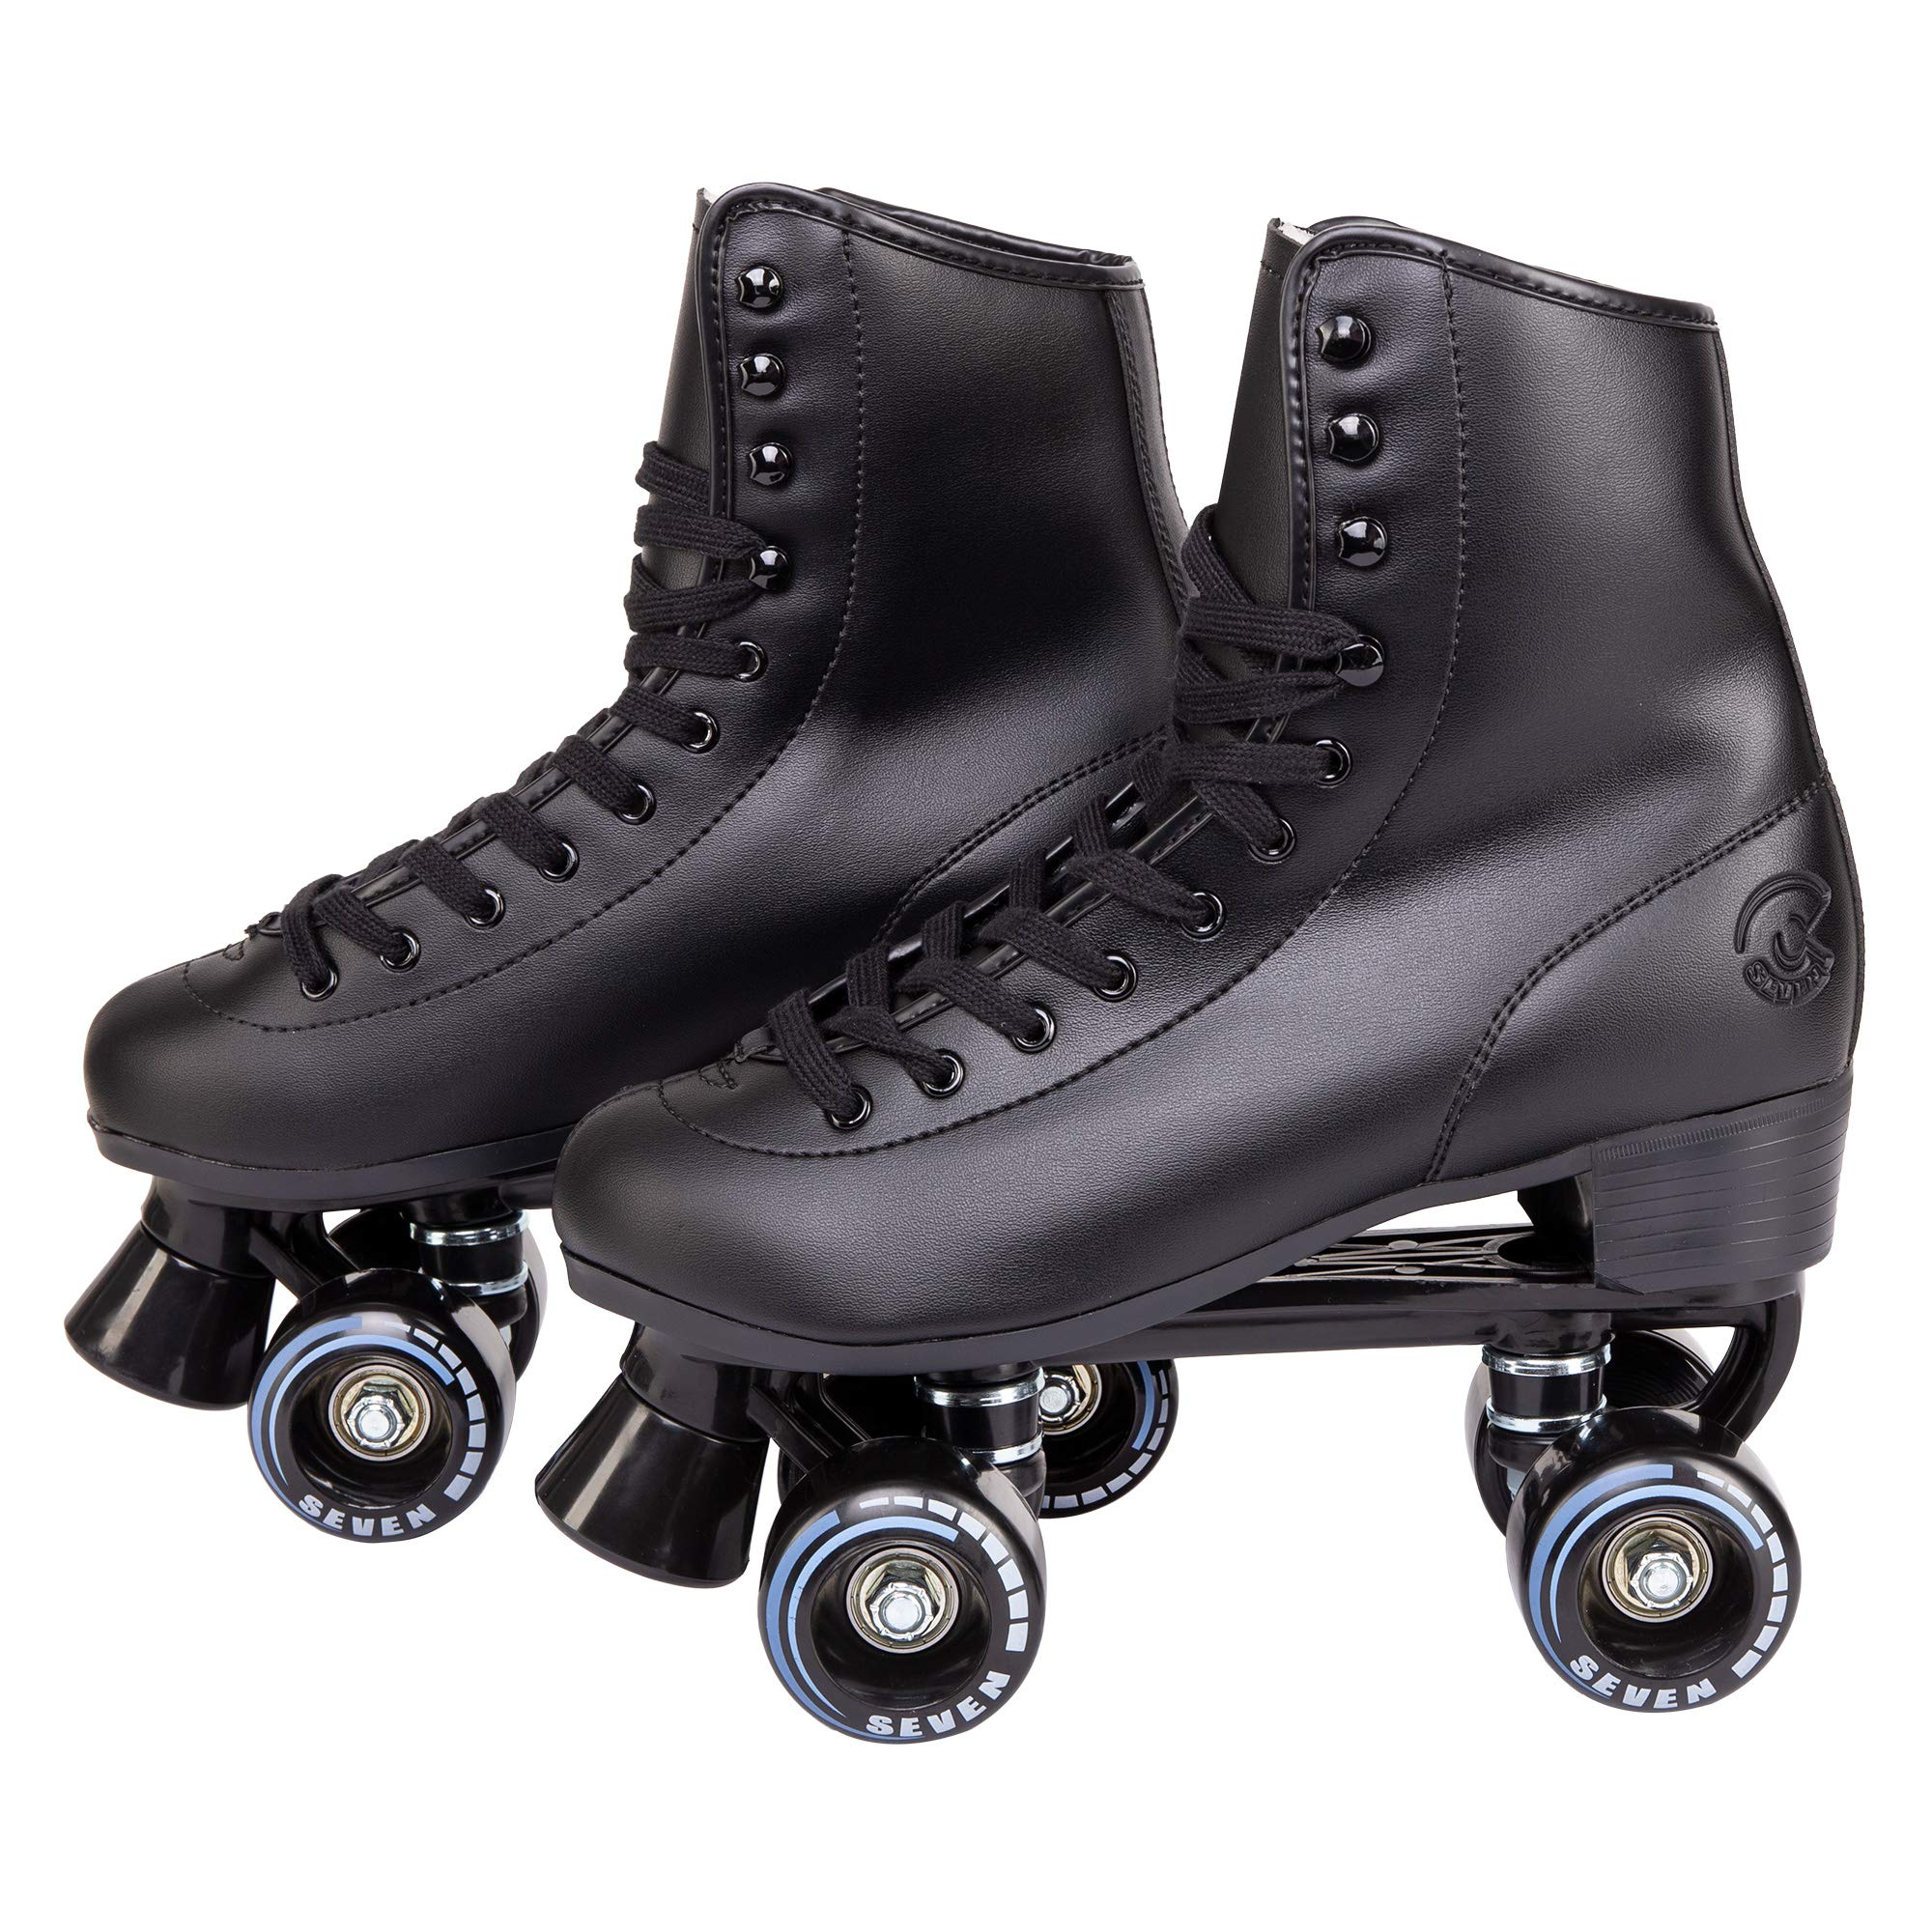 C SEVEN Soft Faux Leather Quad Roller Skates (Black/Men's 9 / Women's 10) by C SEVEN